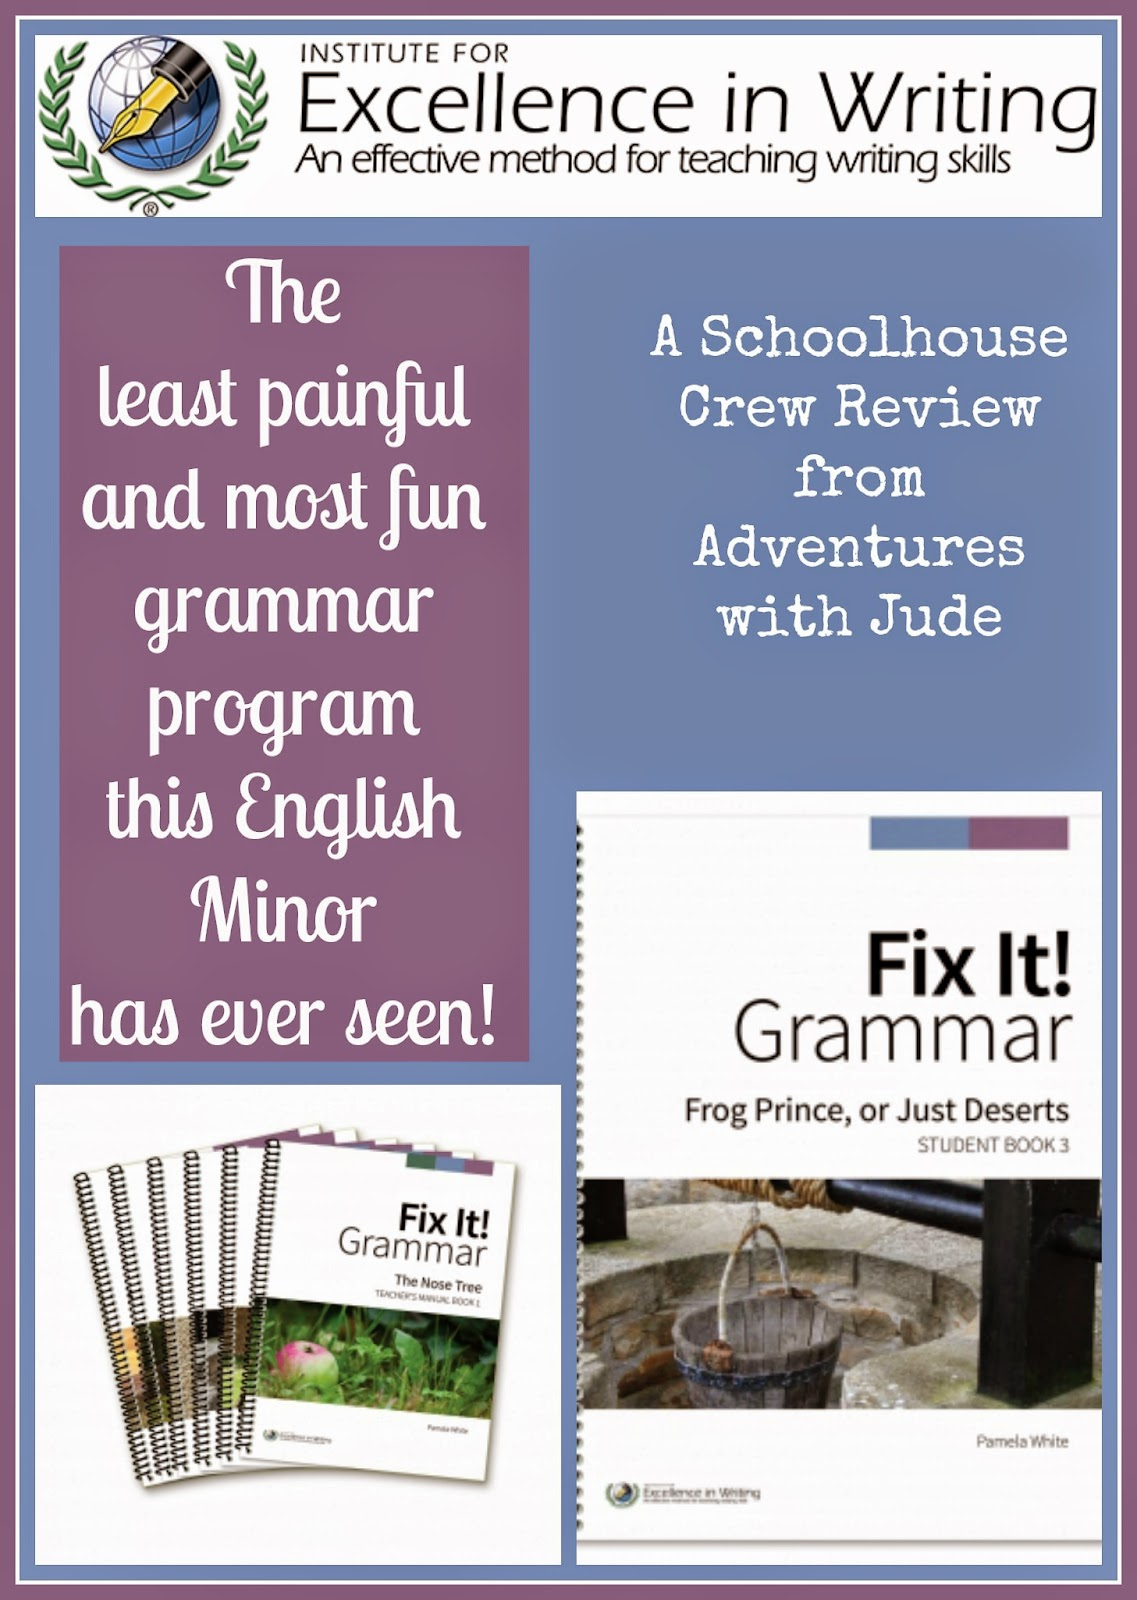 IEW Fix It Grammar Review  #grammar #writing #IEW